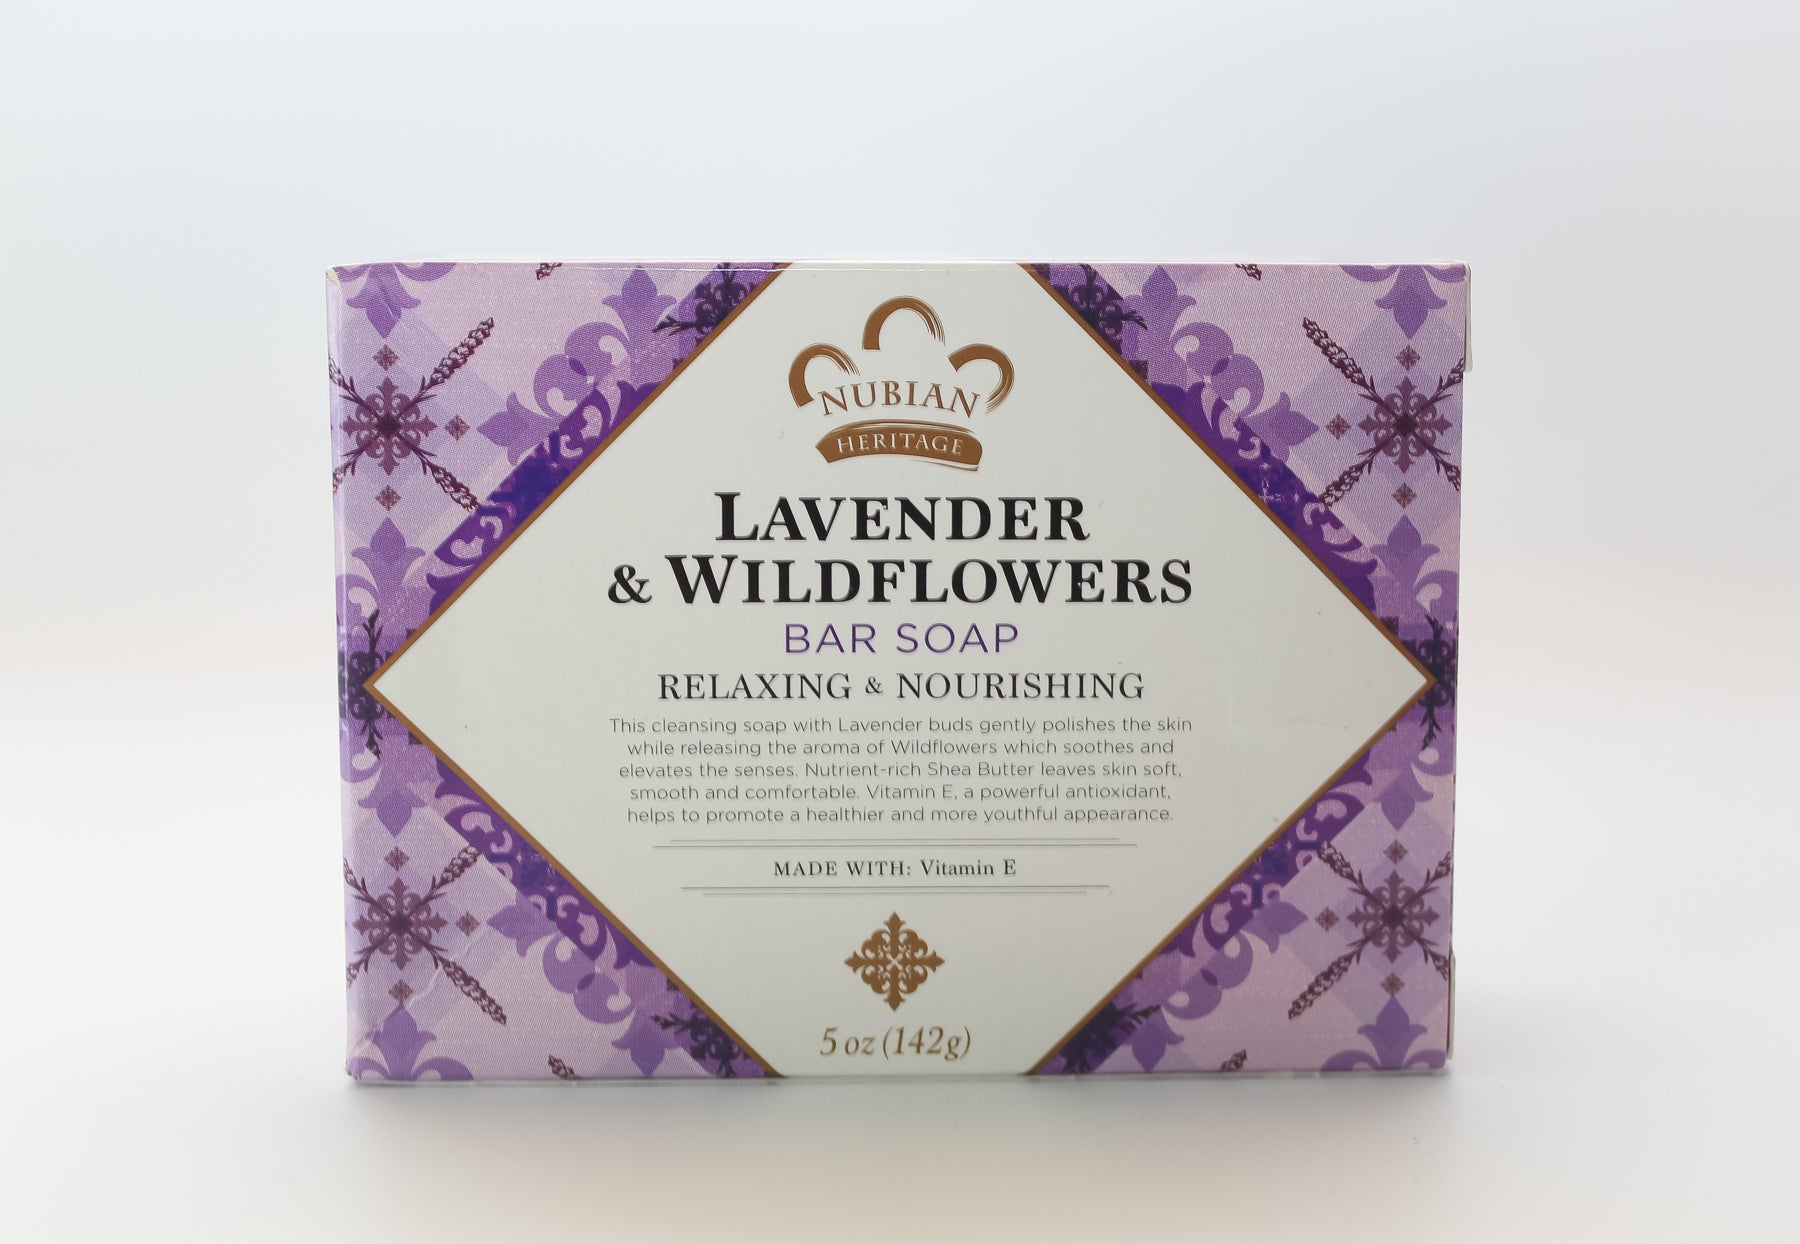 Lavender & Wildflowers Bar Soap, 5oz